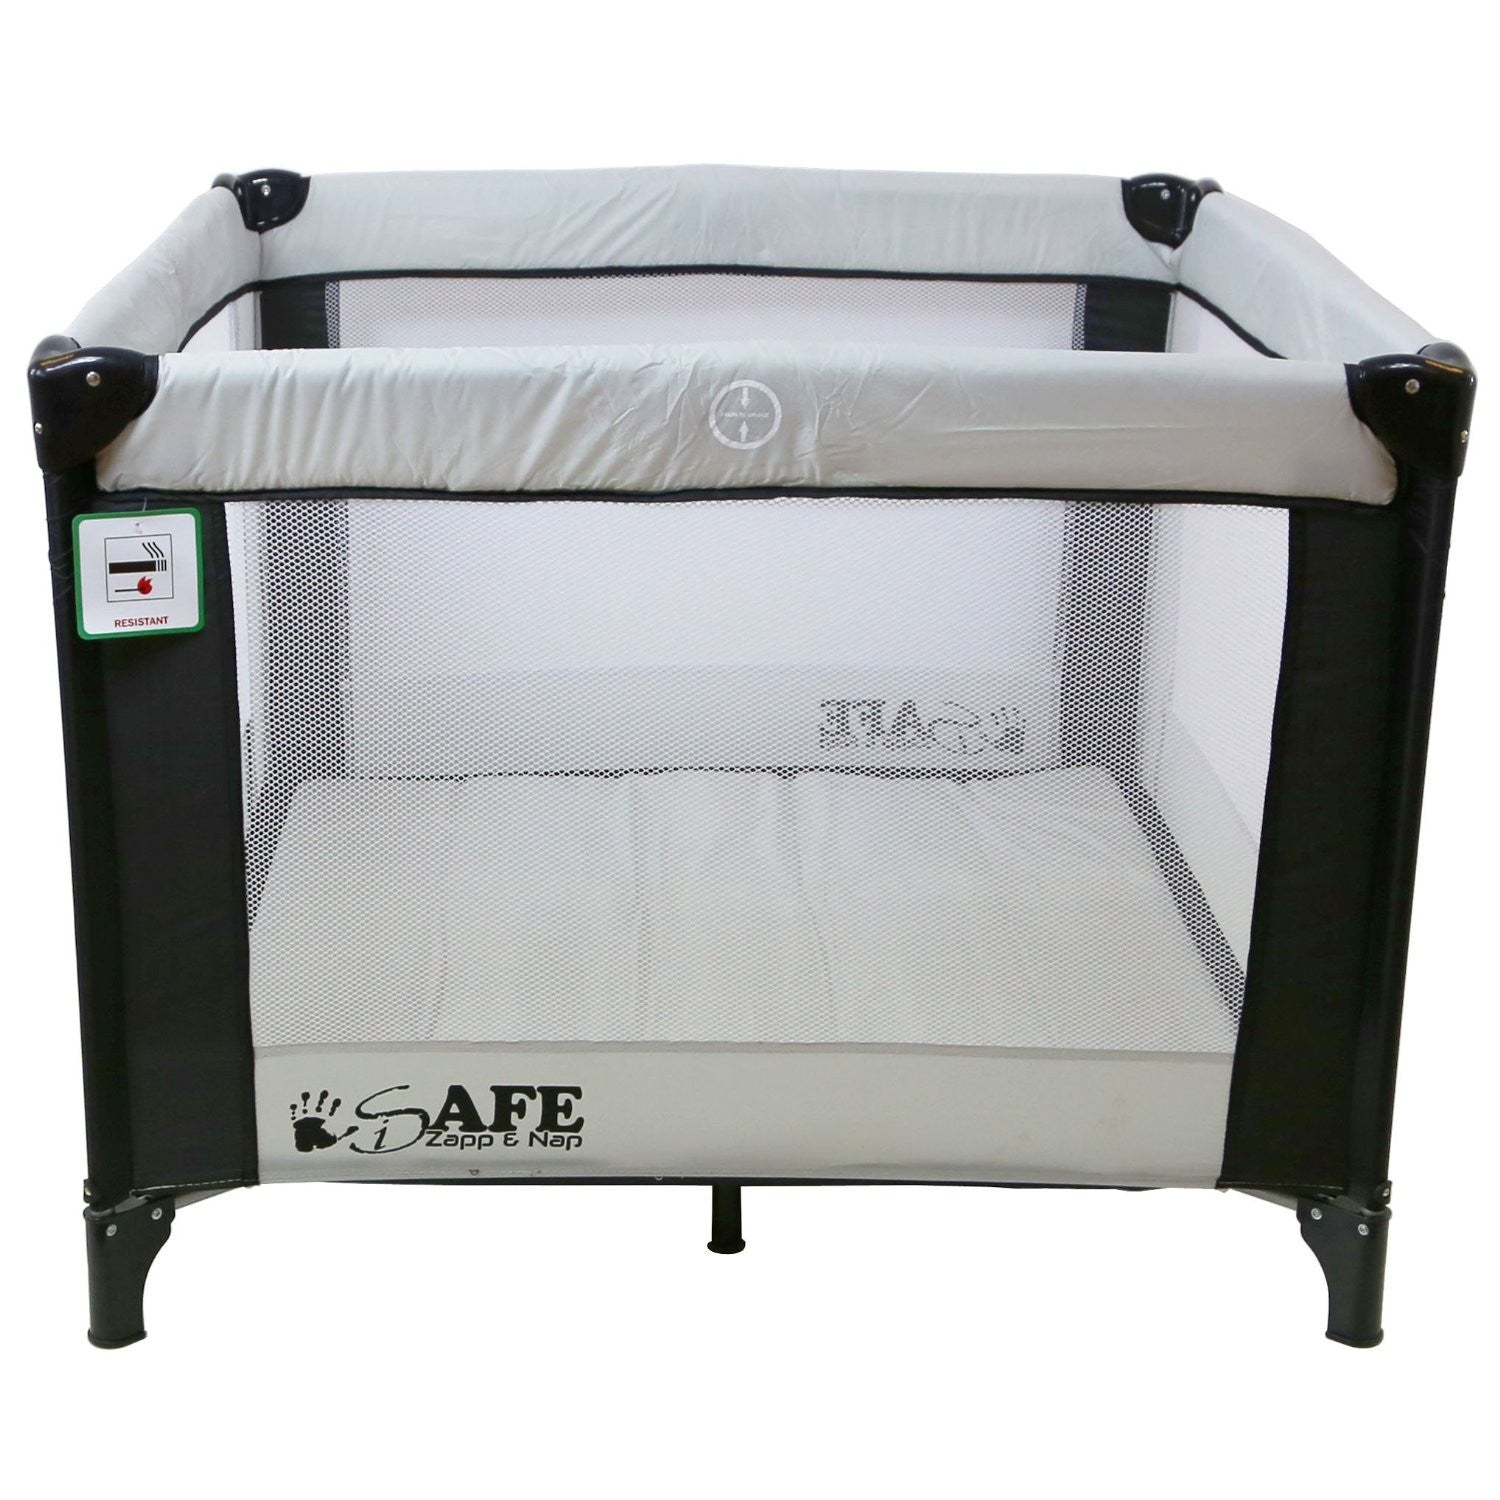 Baby bed for travel - Isafe Zapp And Nap Luxury Square Travel Cot Playpen Black Grey Black